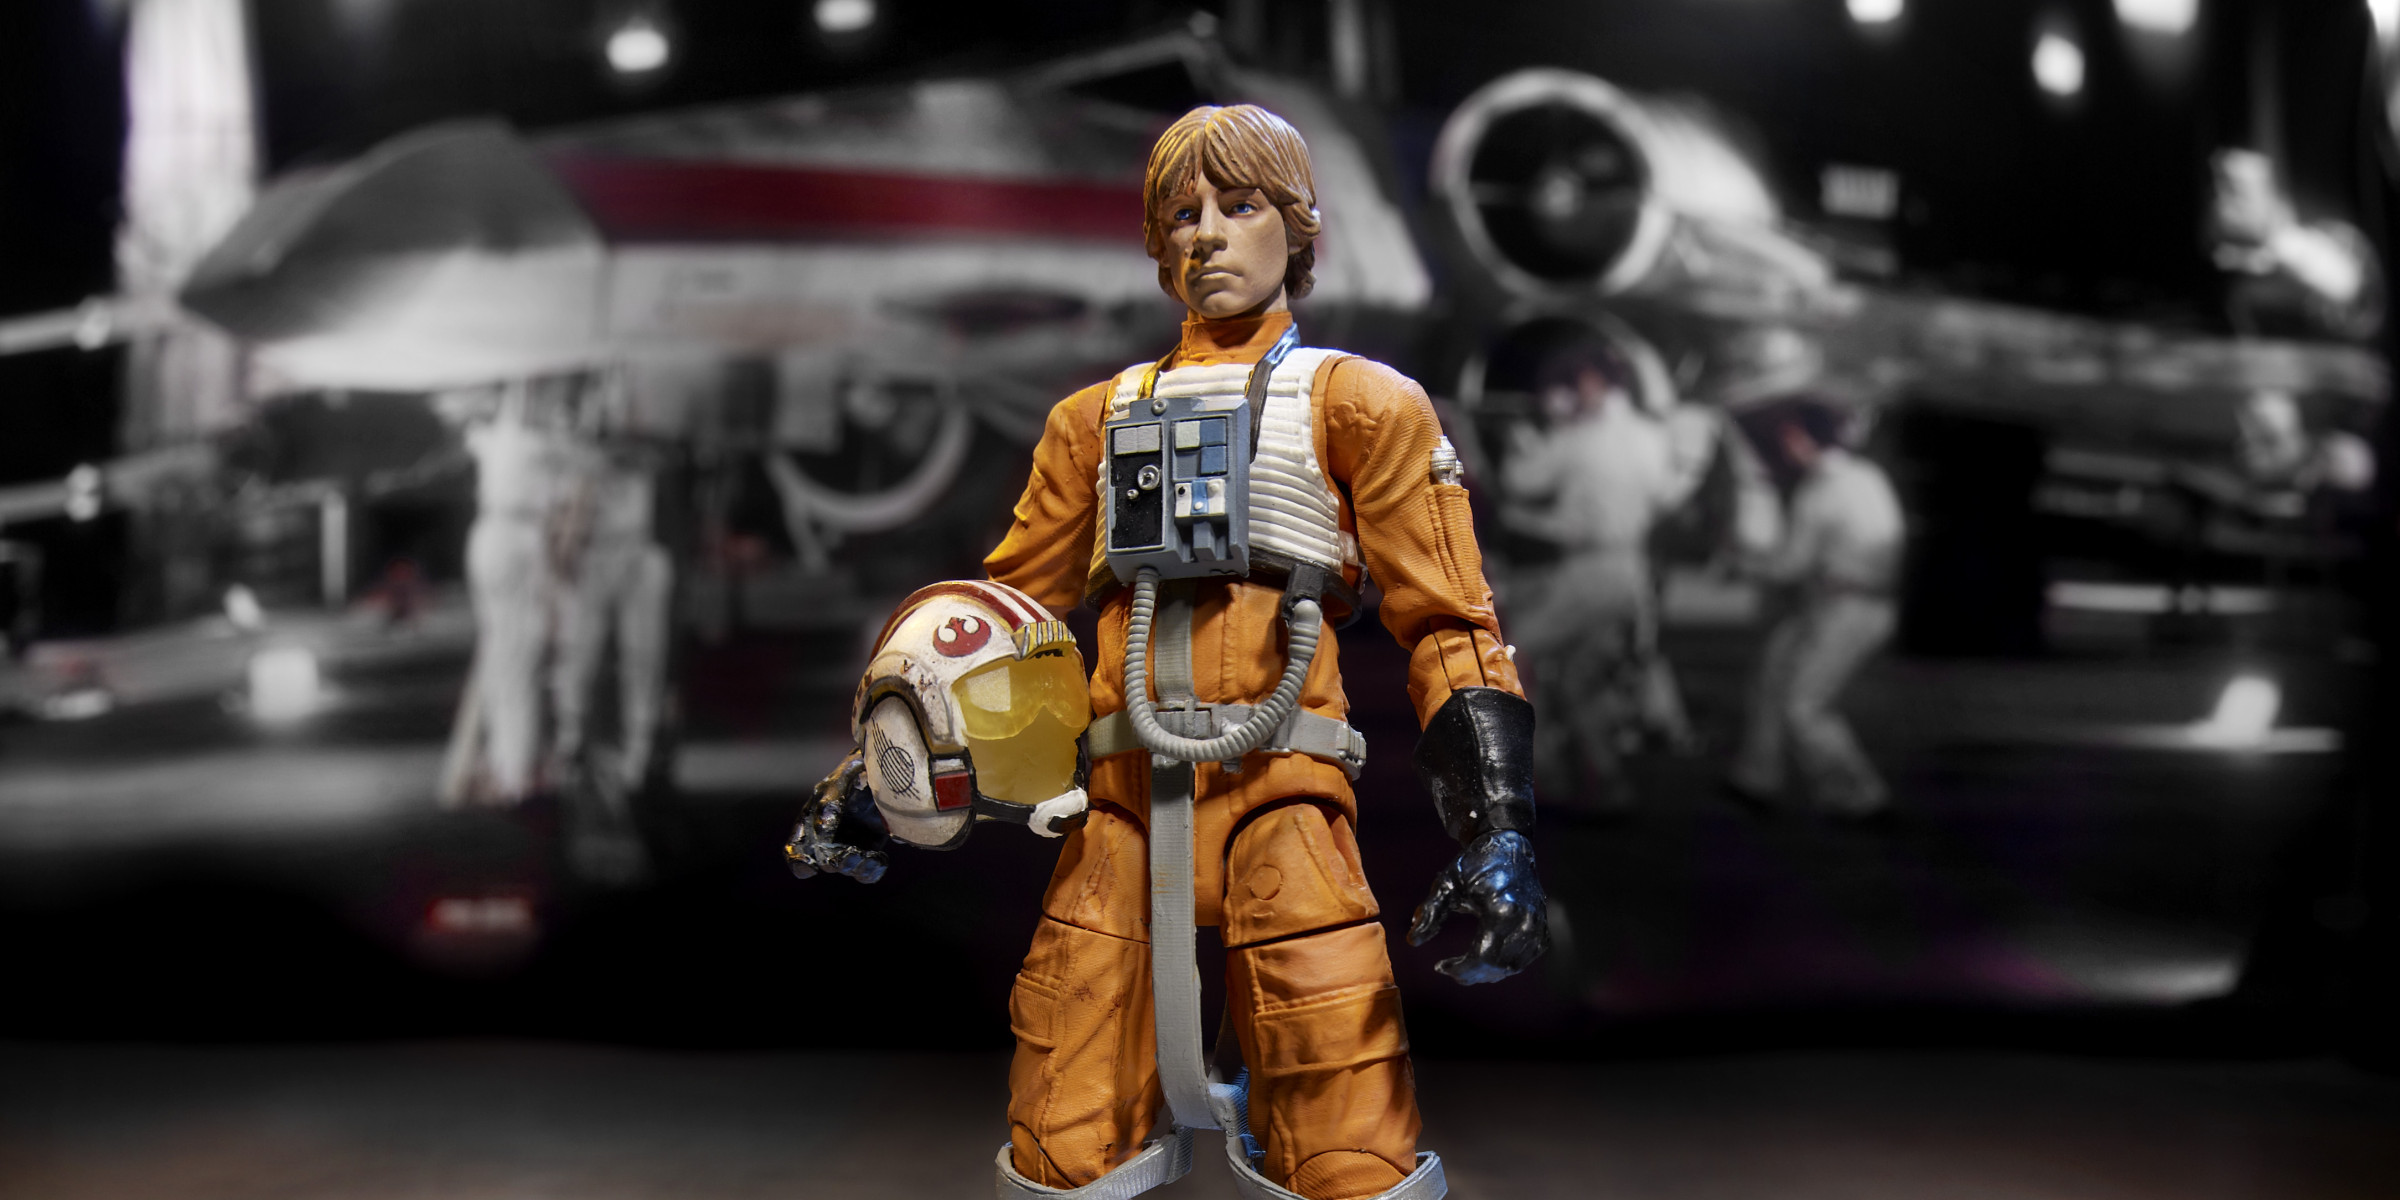 6in-Luke-helmet-under-arm